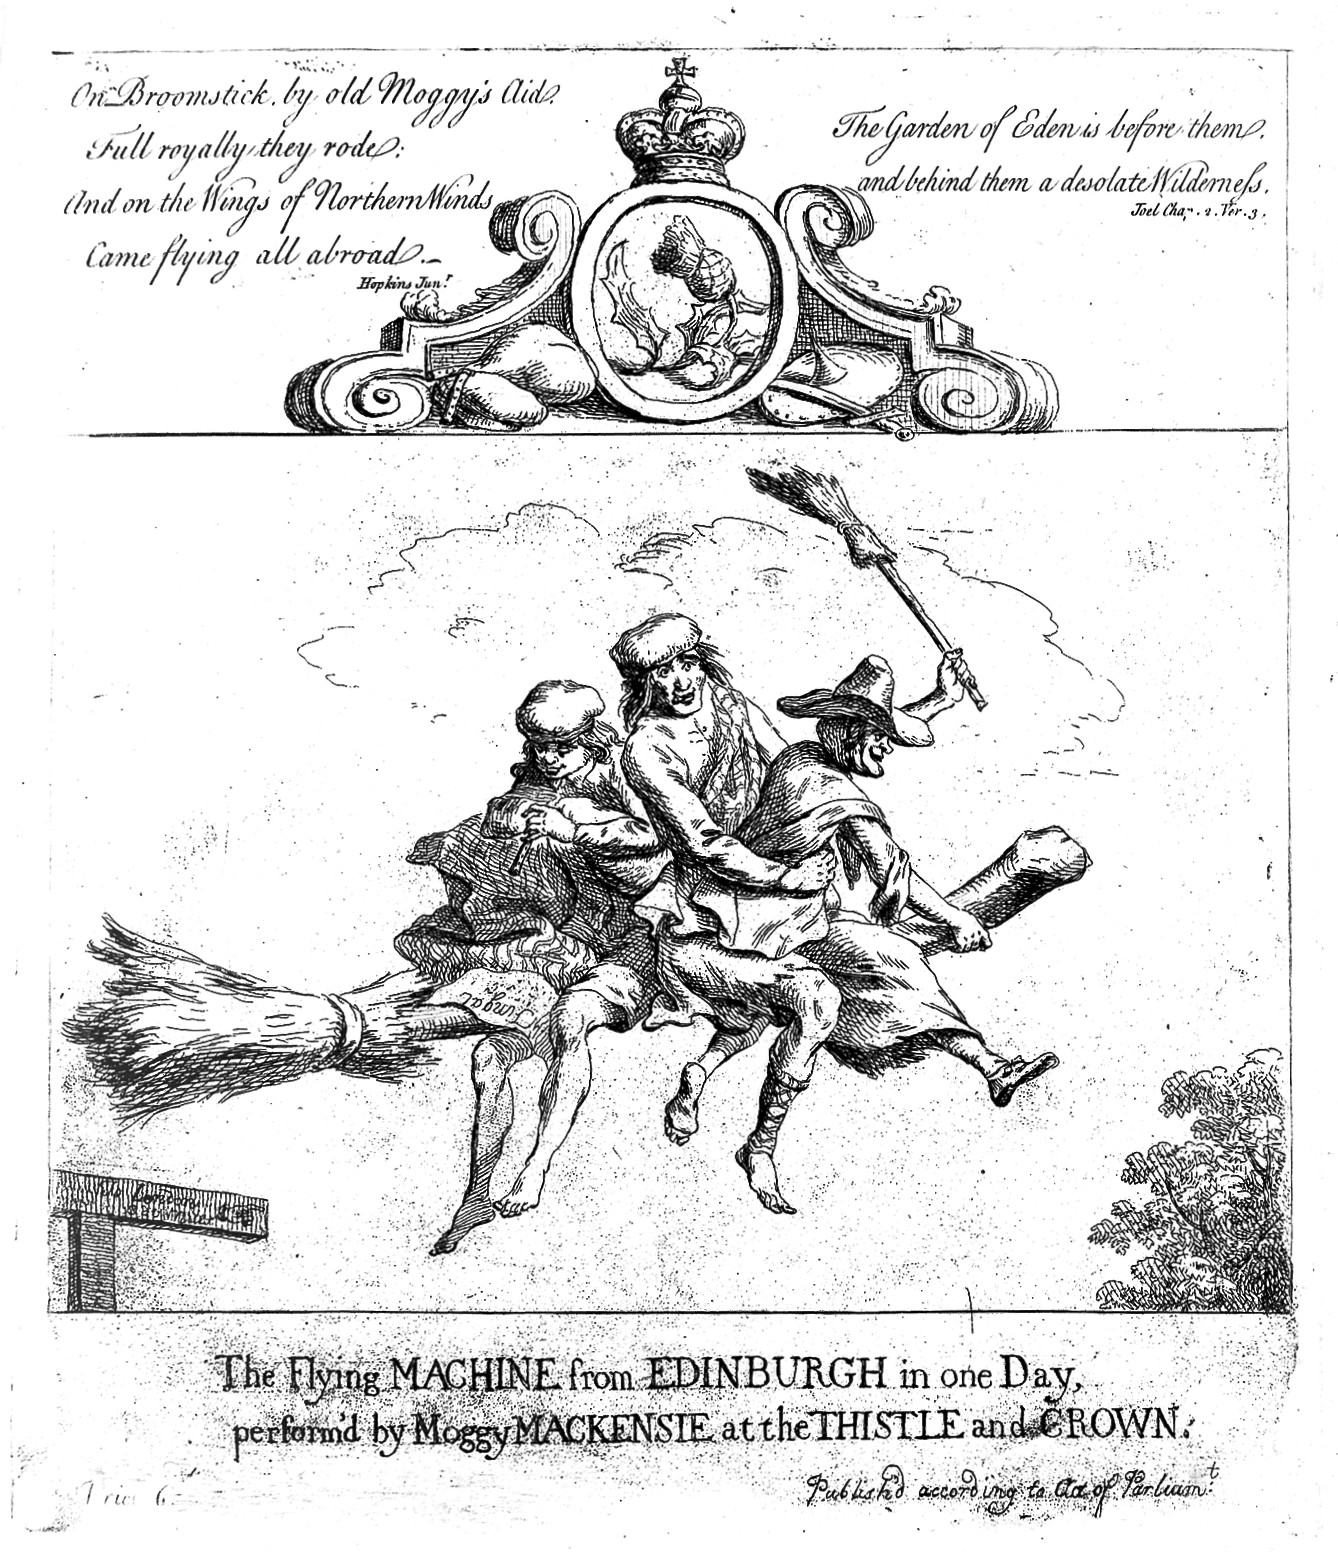 Two scotsmen and a witch flying on a broomstick. Etching by P. Sandby with text by Hopkins. Image courtesy of Wellcome Images.